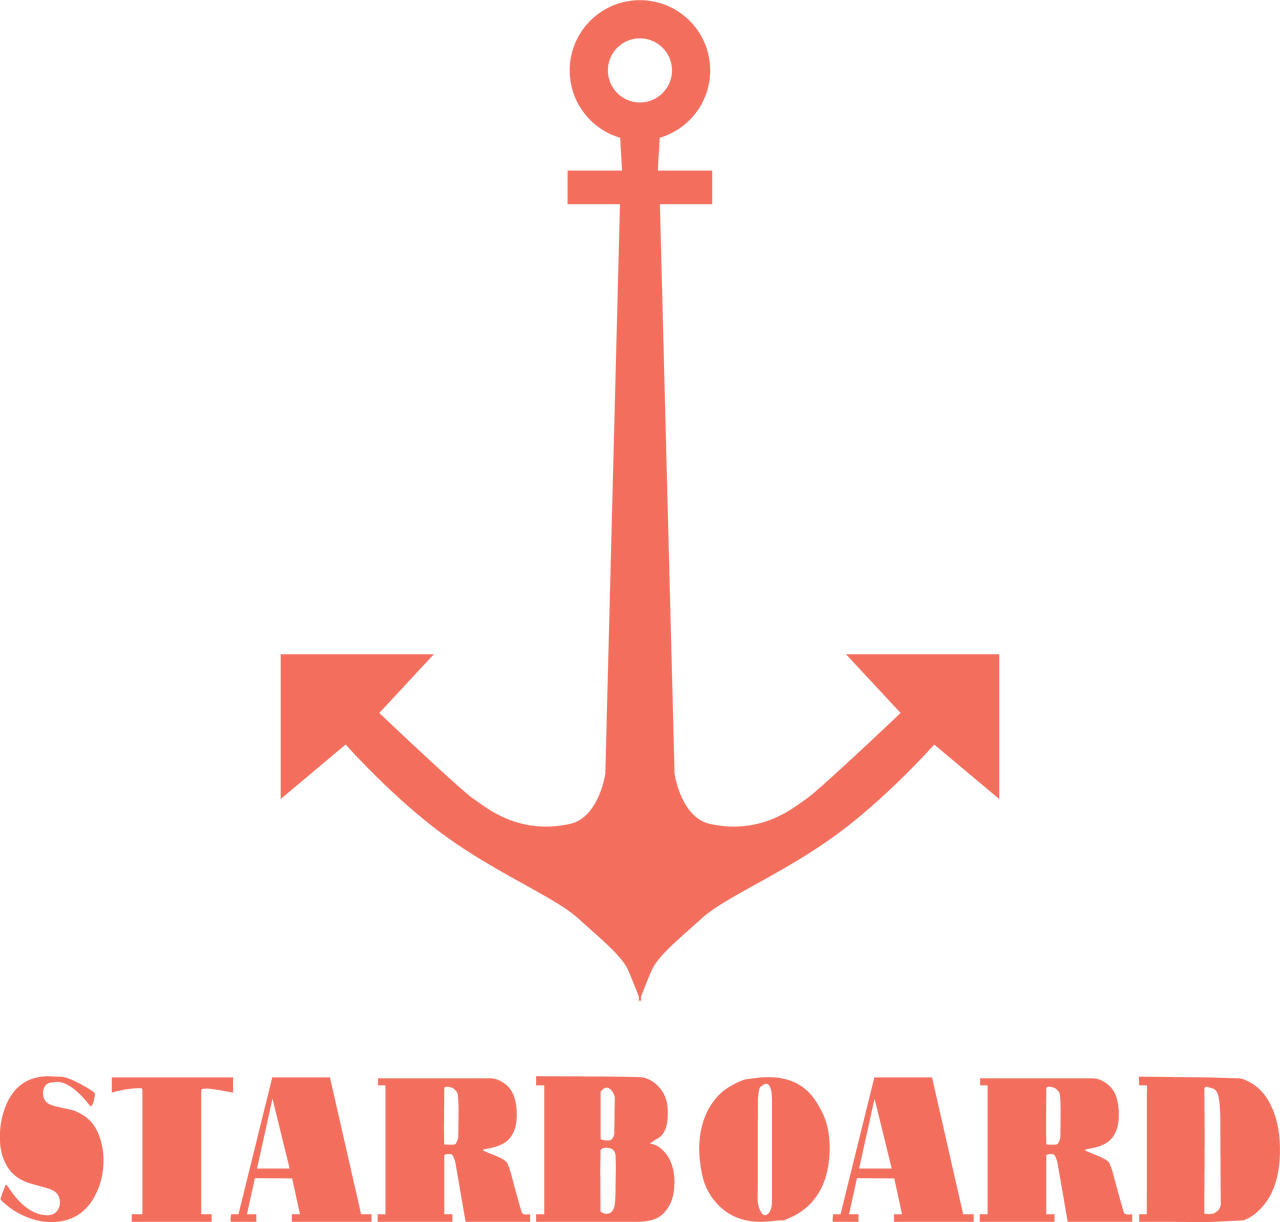 Star Board SVG Cut File